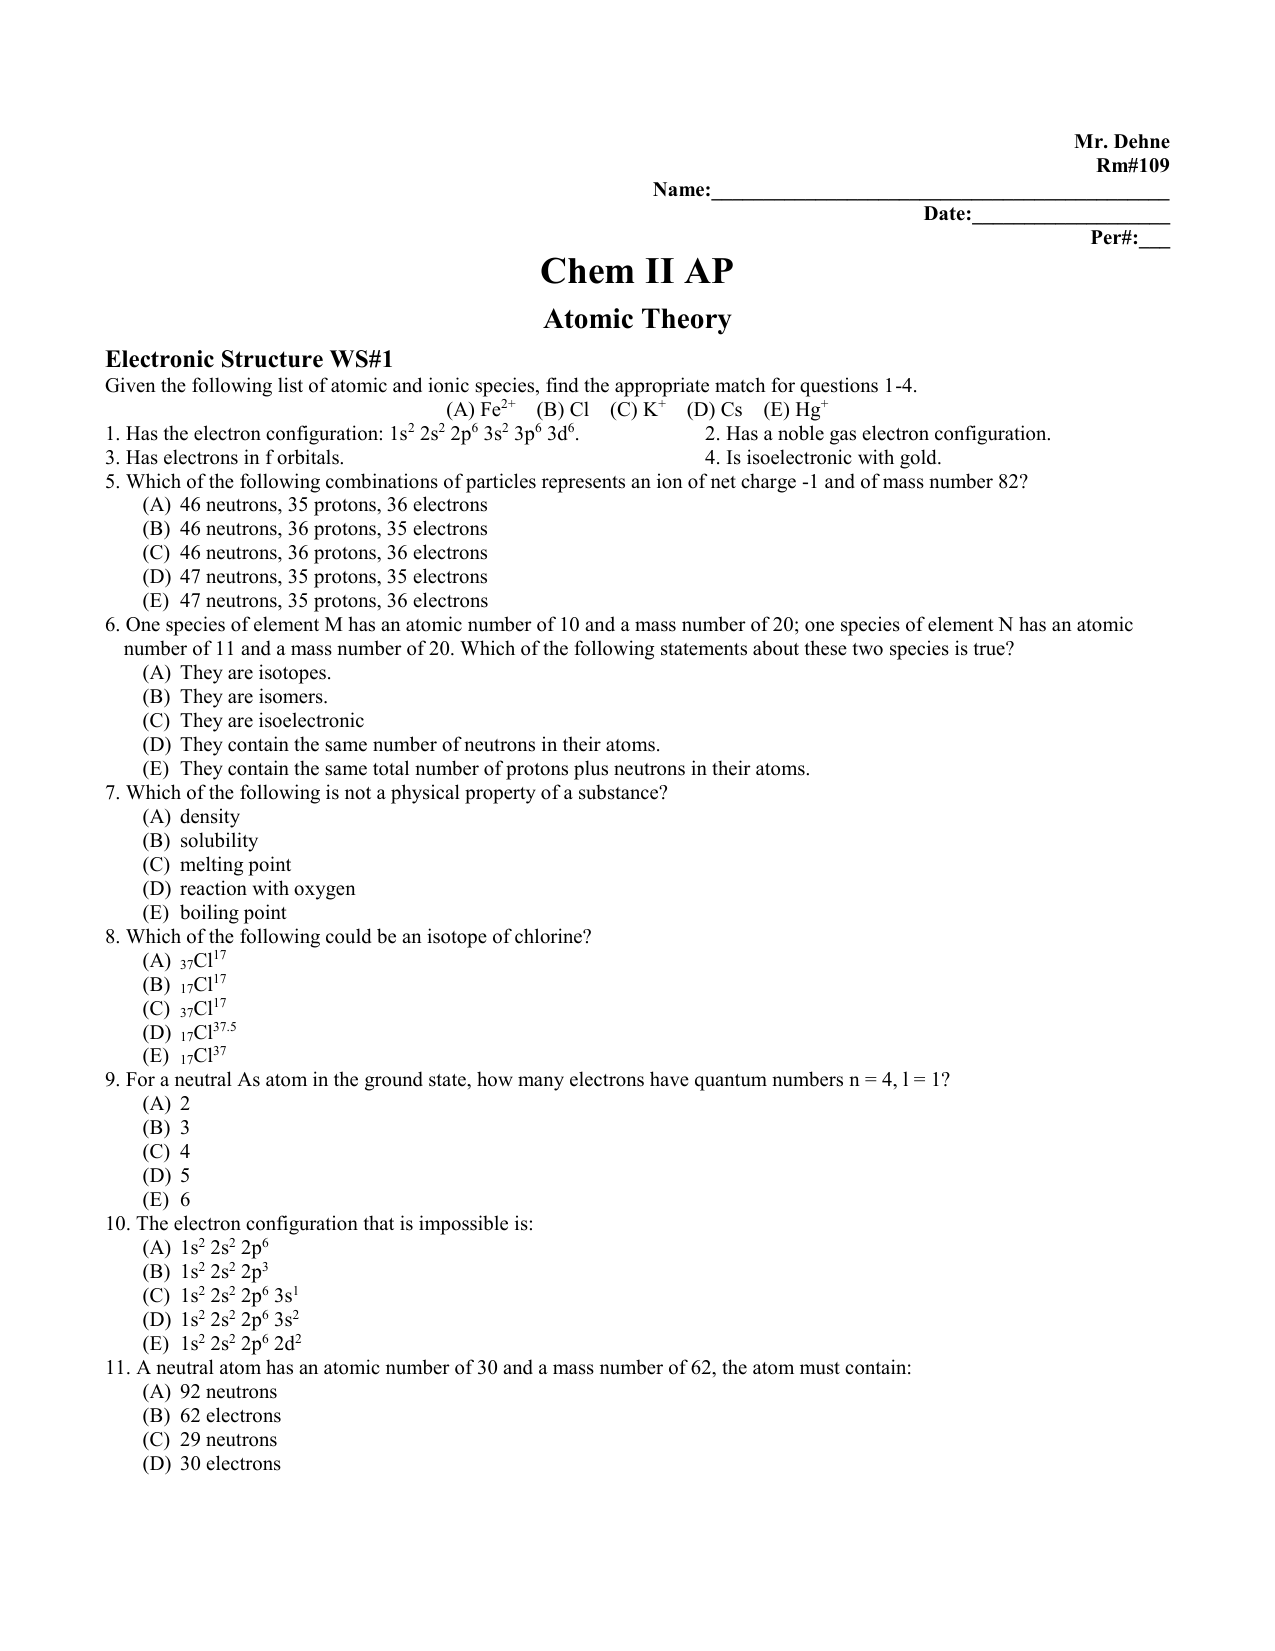 Electronic Structure Worksheet 1